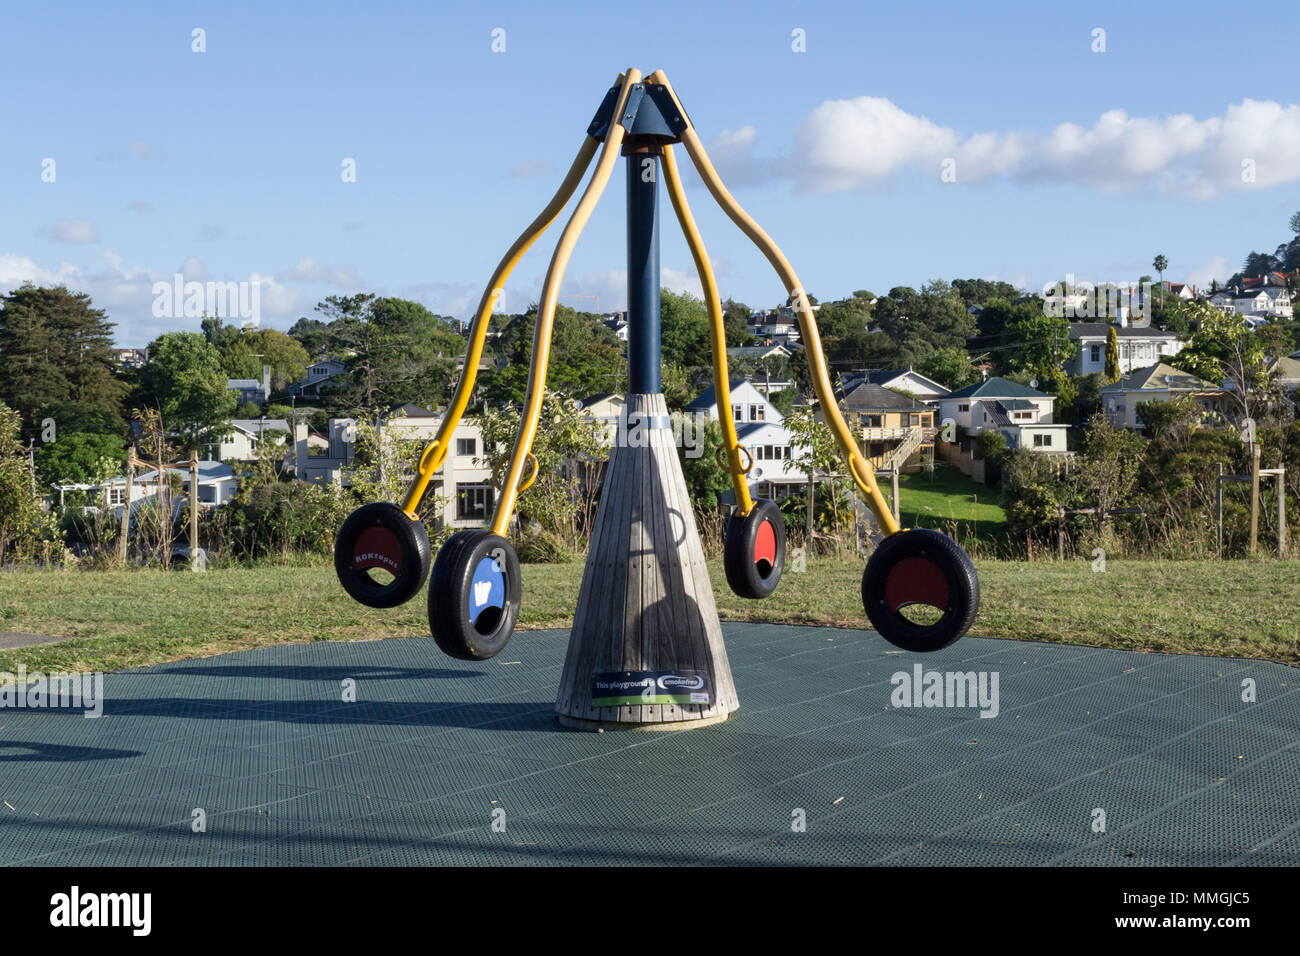 Auckland, New Zealand. Children's playground in Newmarket park, designated as a smoke free area Stock Photo